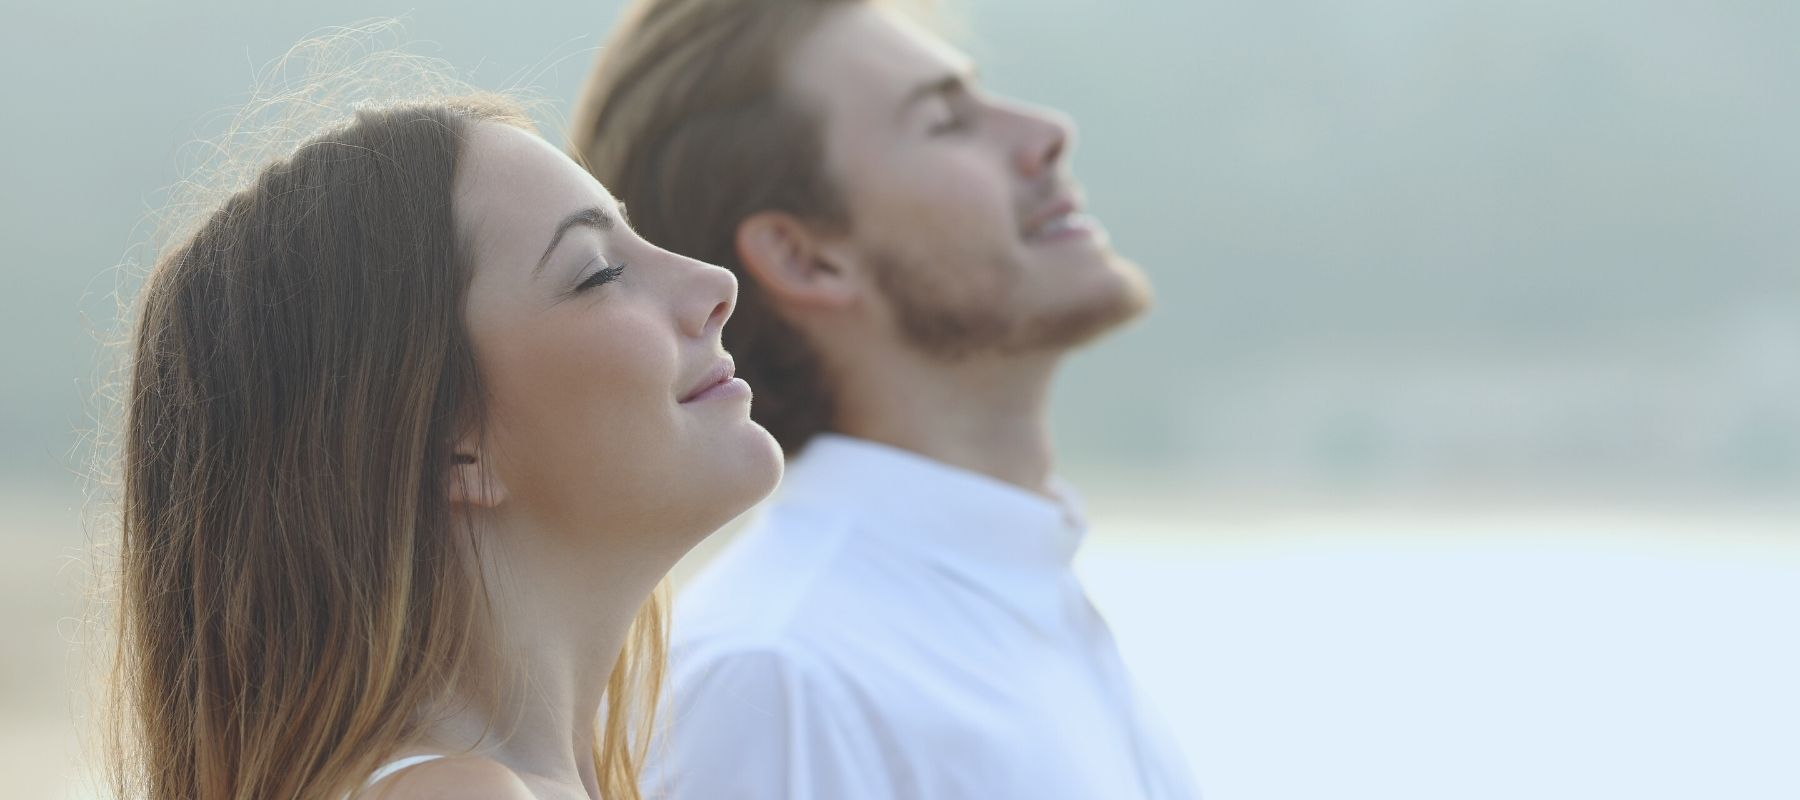 Man and woman breathing in fresh air together